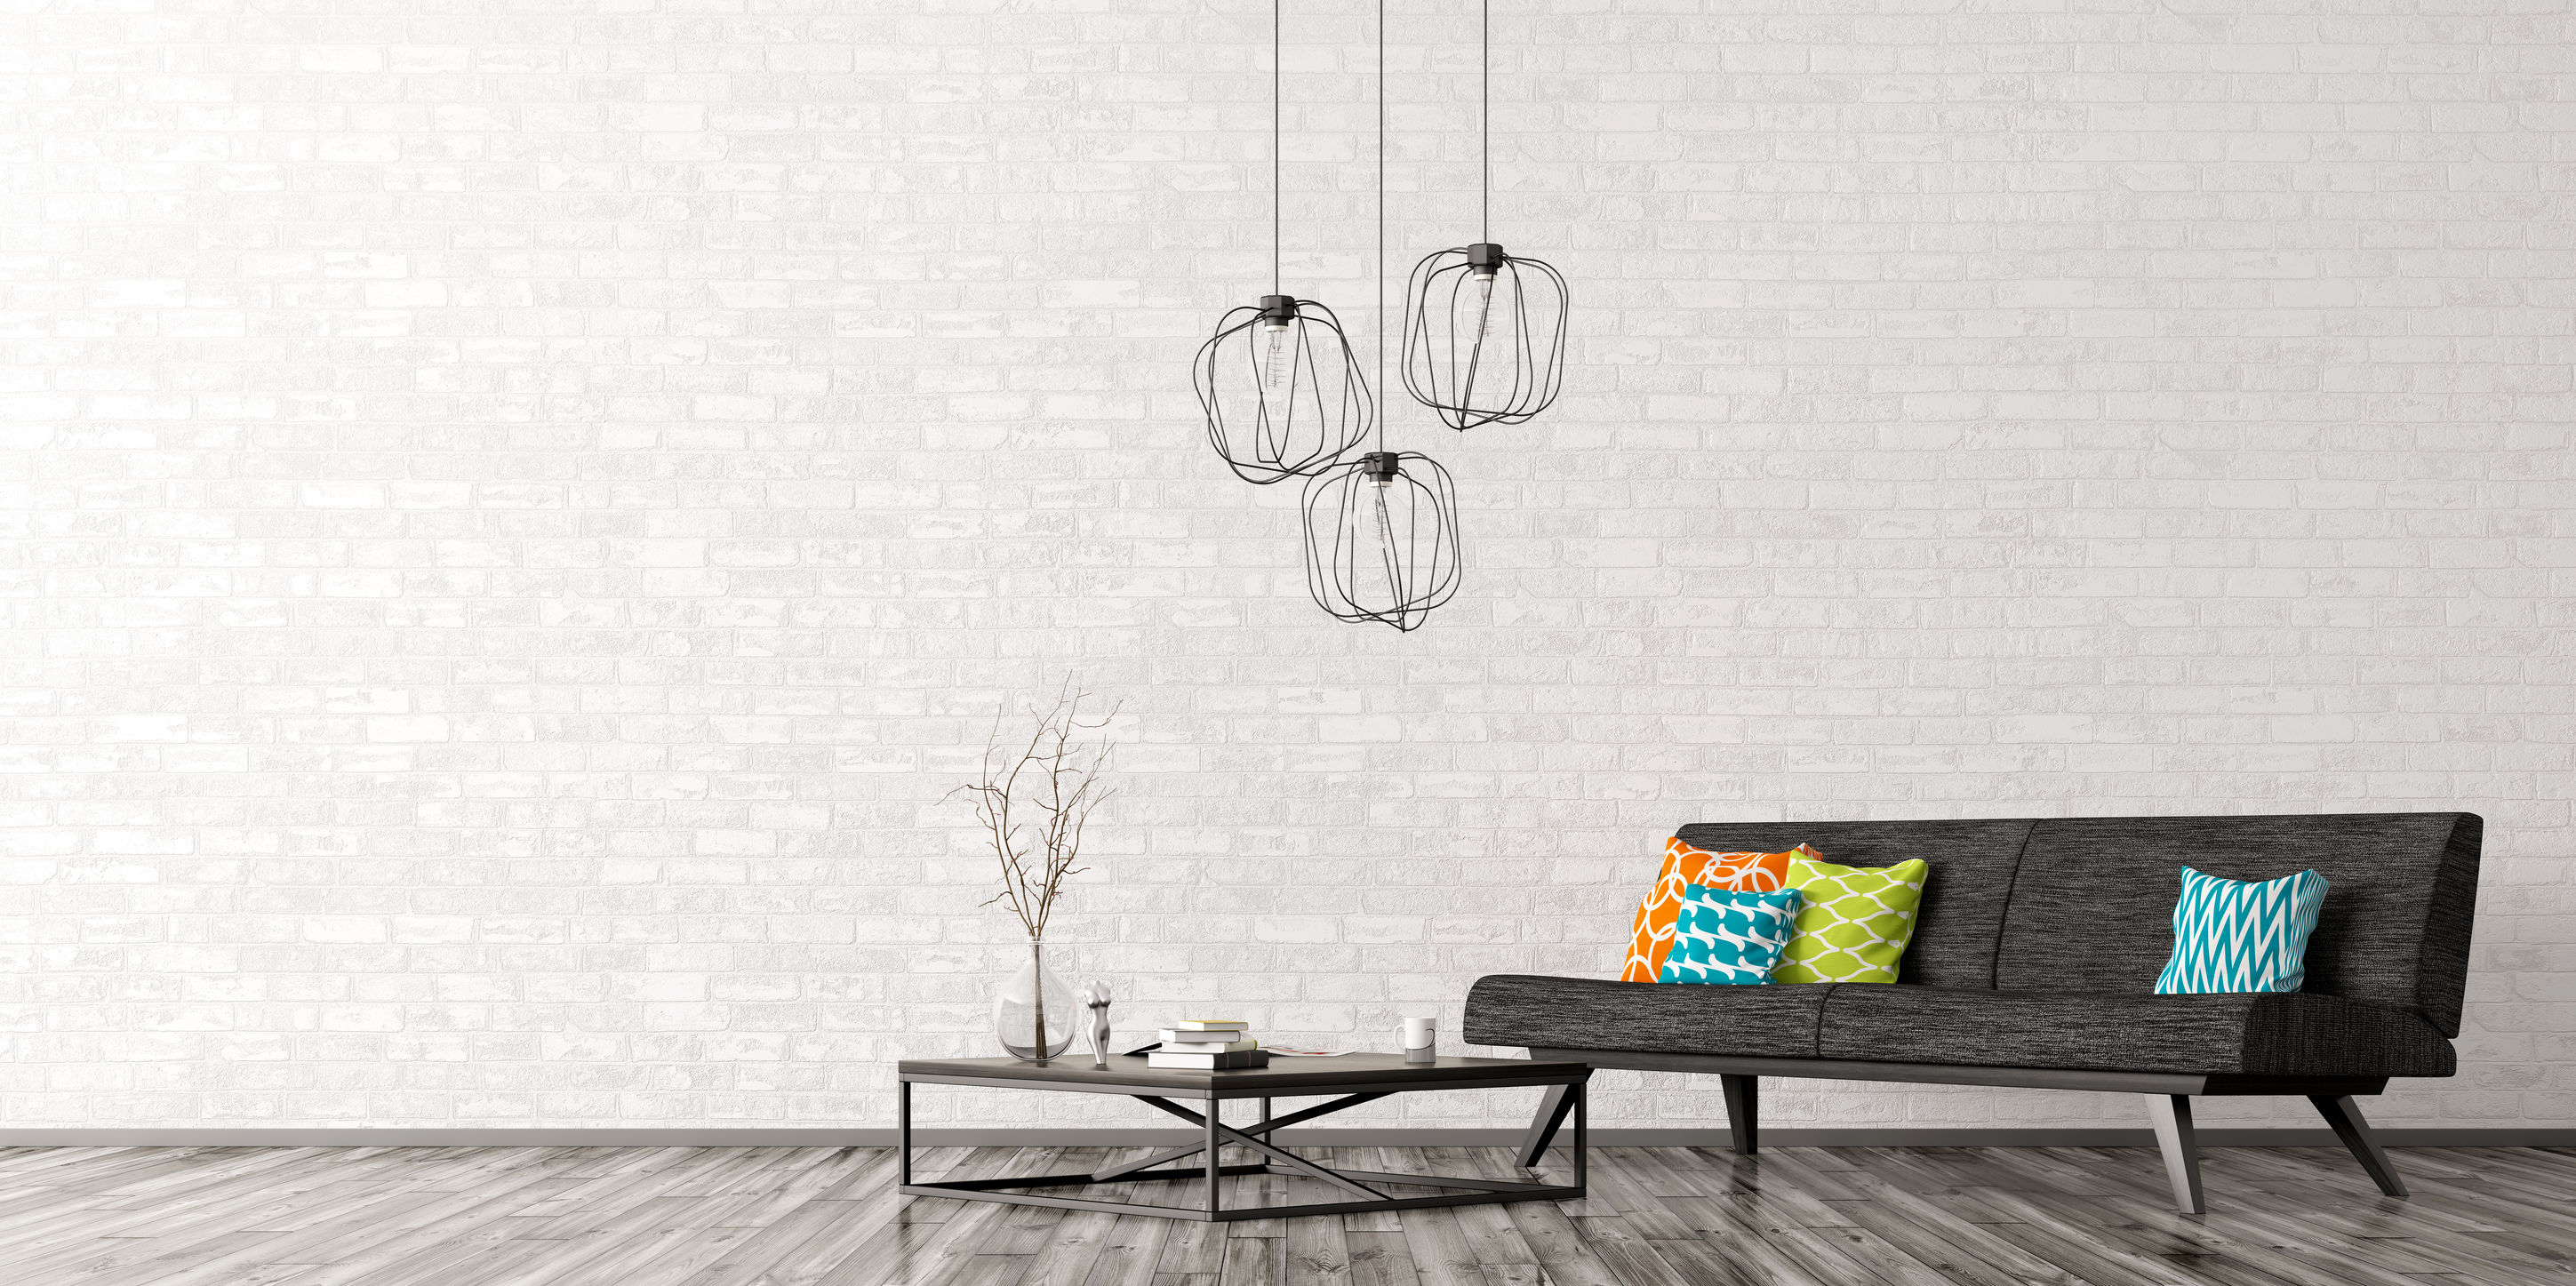 interior-of0living-room-with-black-sofa-coffee-table-lamps-over-brick-wall